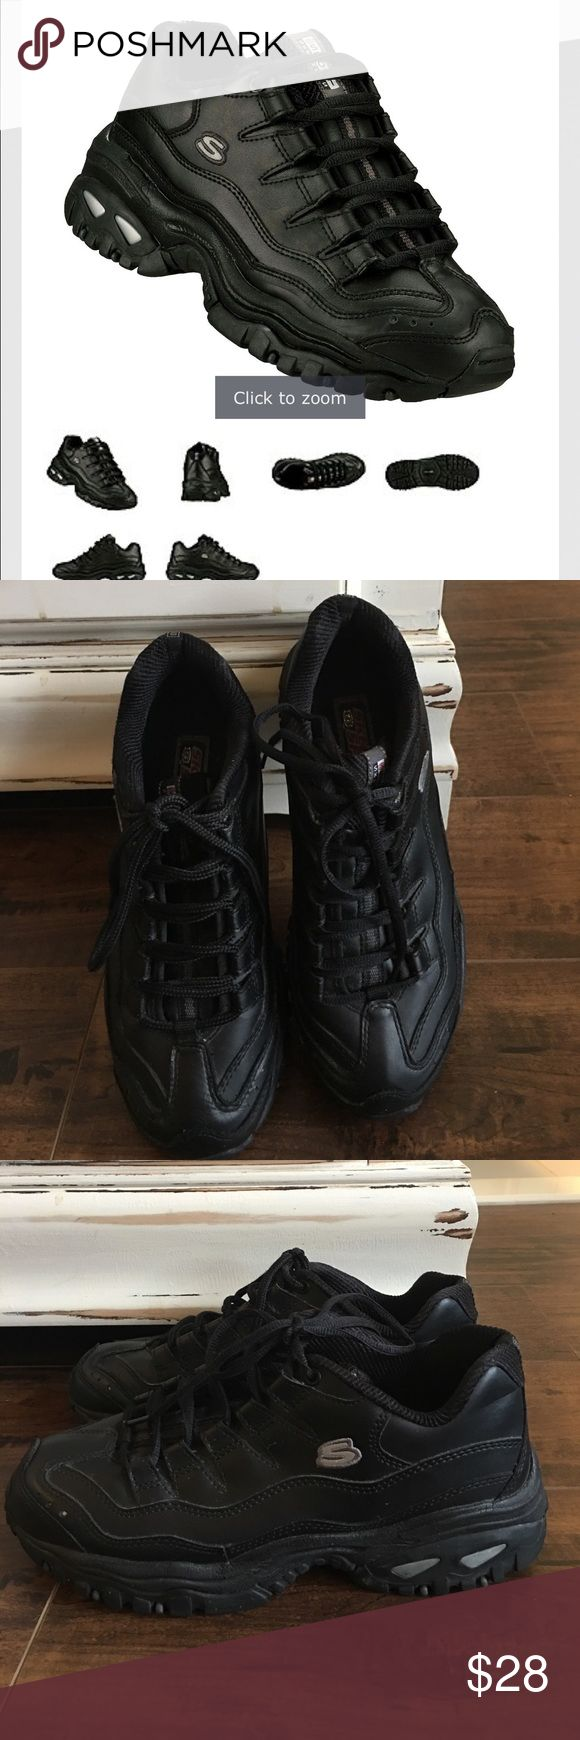 Skechers sport black shoes Great used condition. Smoke free and pet free home. Skechers Shoes Sneakers